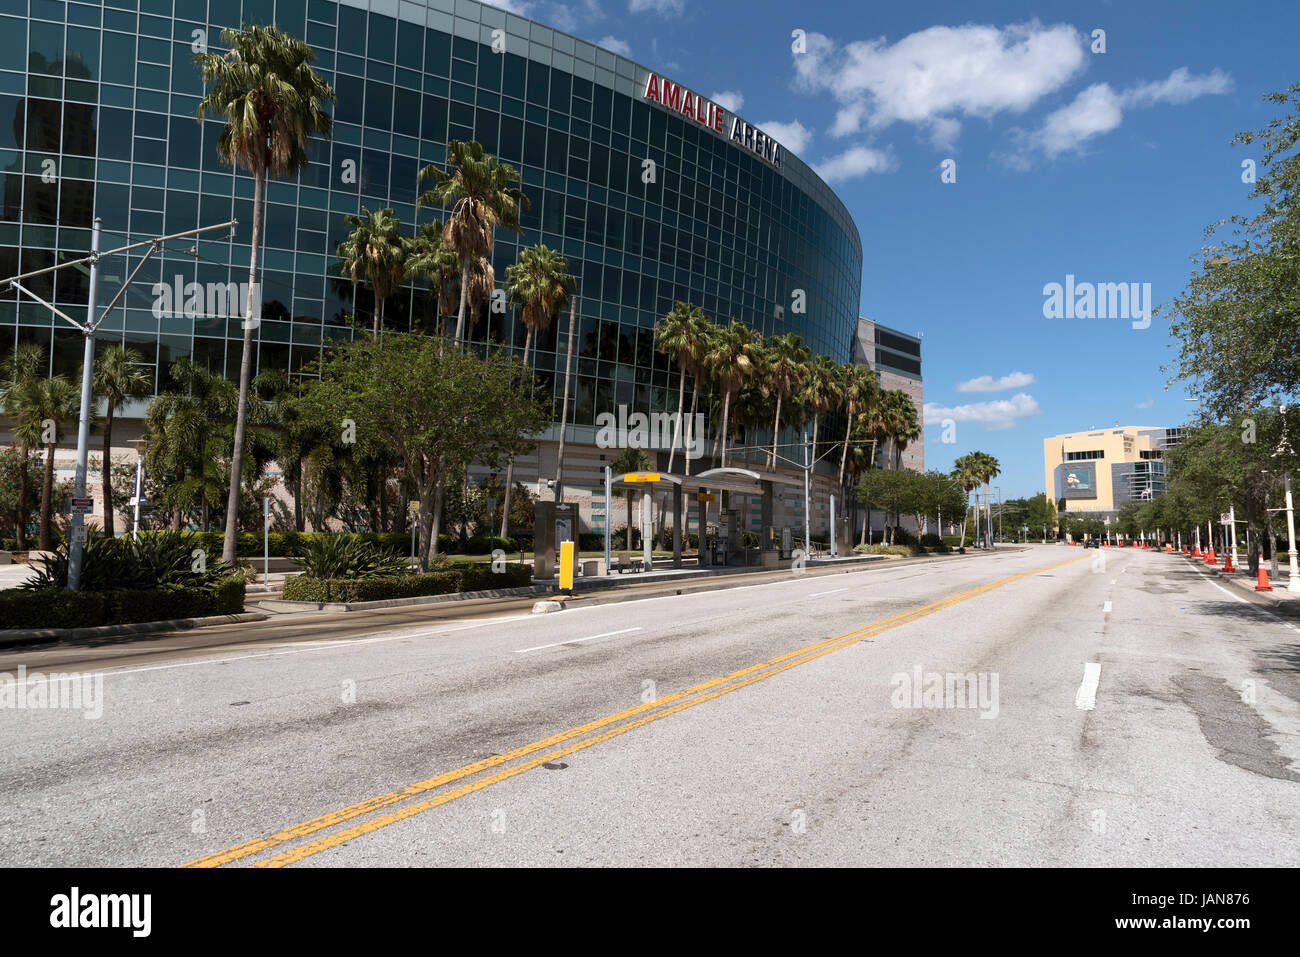 The Amalie Arena on Old Water Street downtown Tampa Florida USA. April 2017. The HSBA streetcar stop and in the - Stock Image